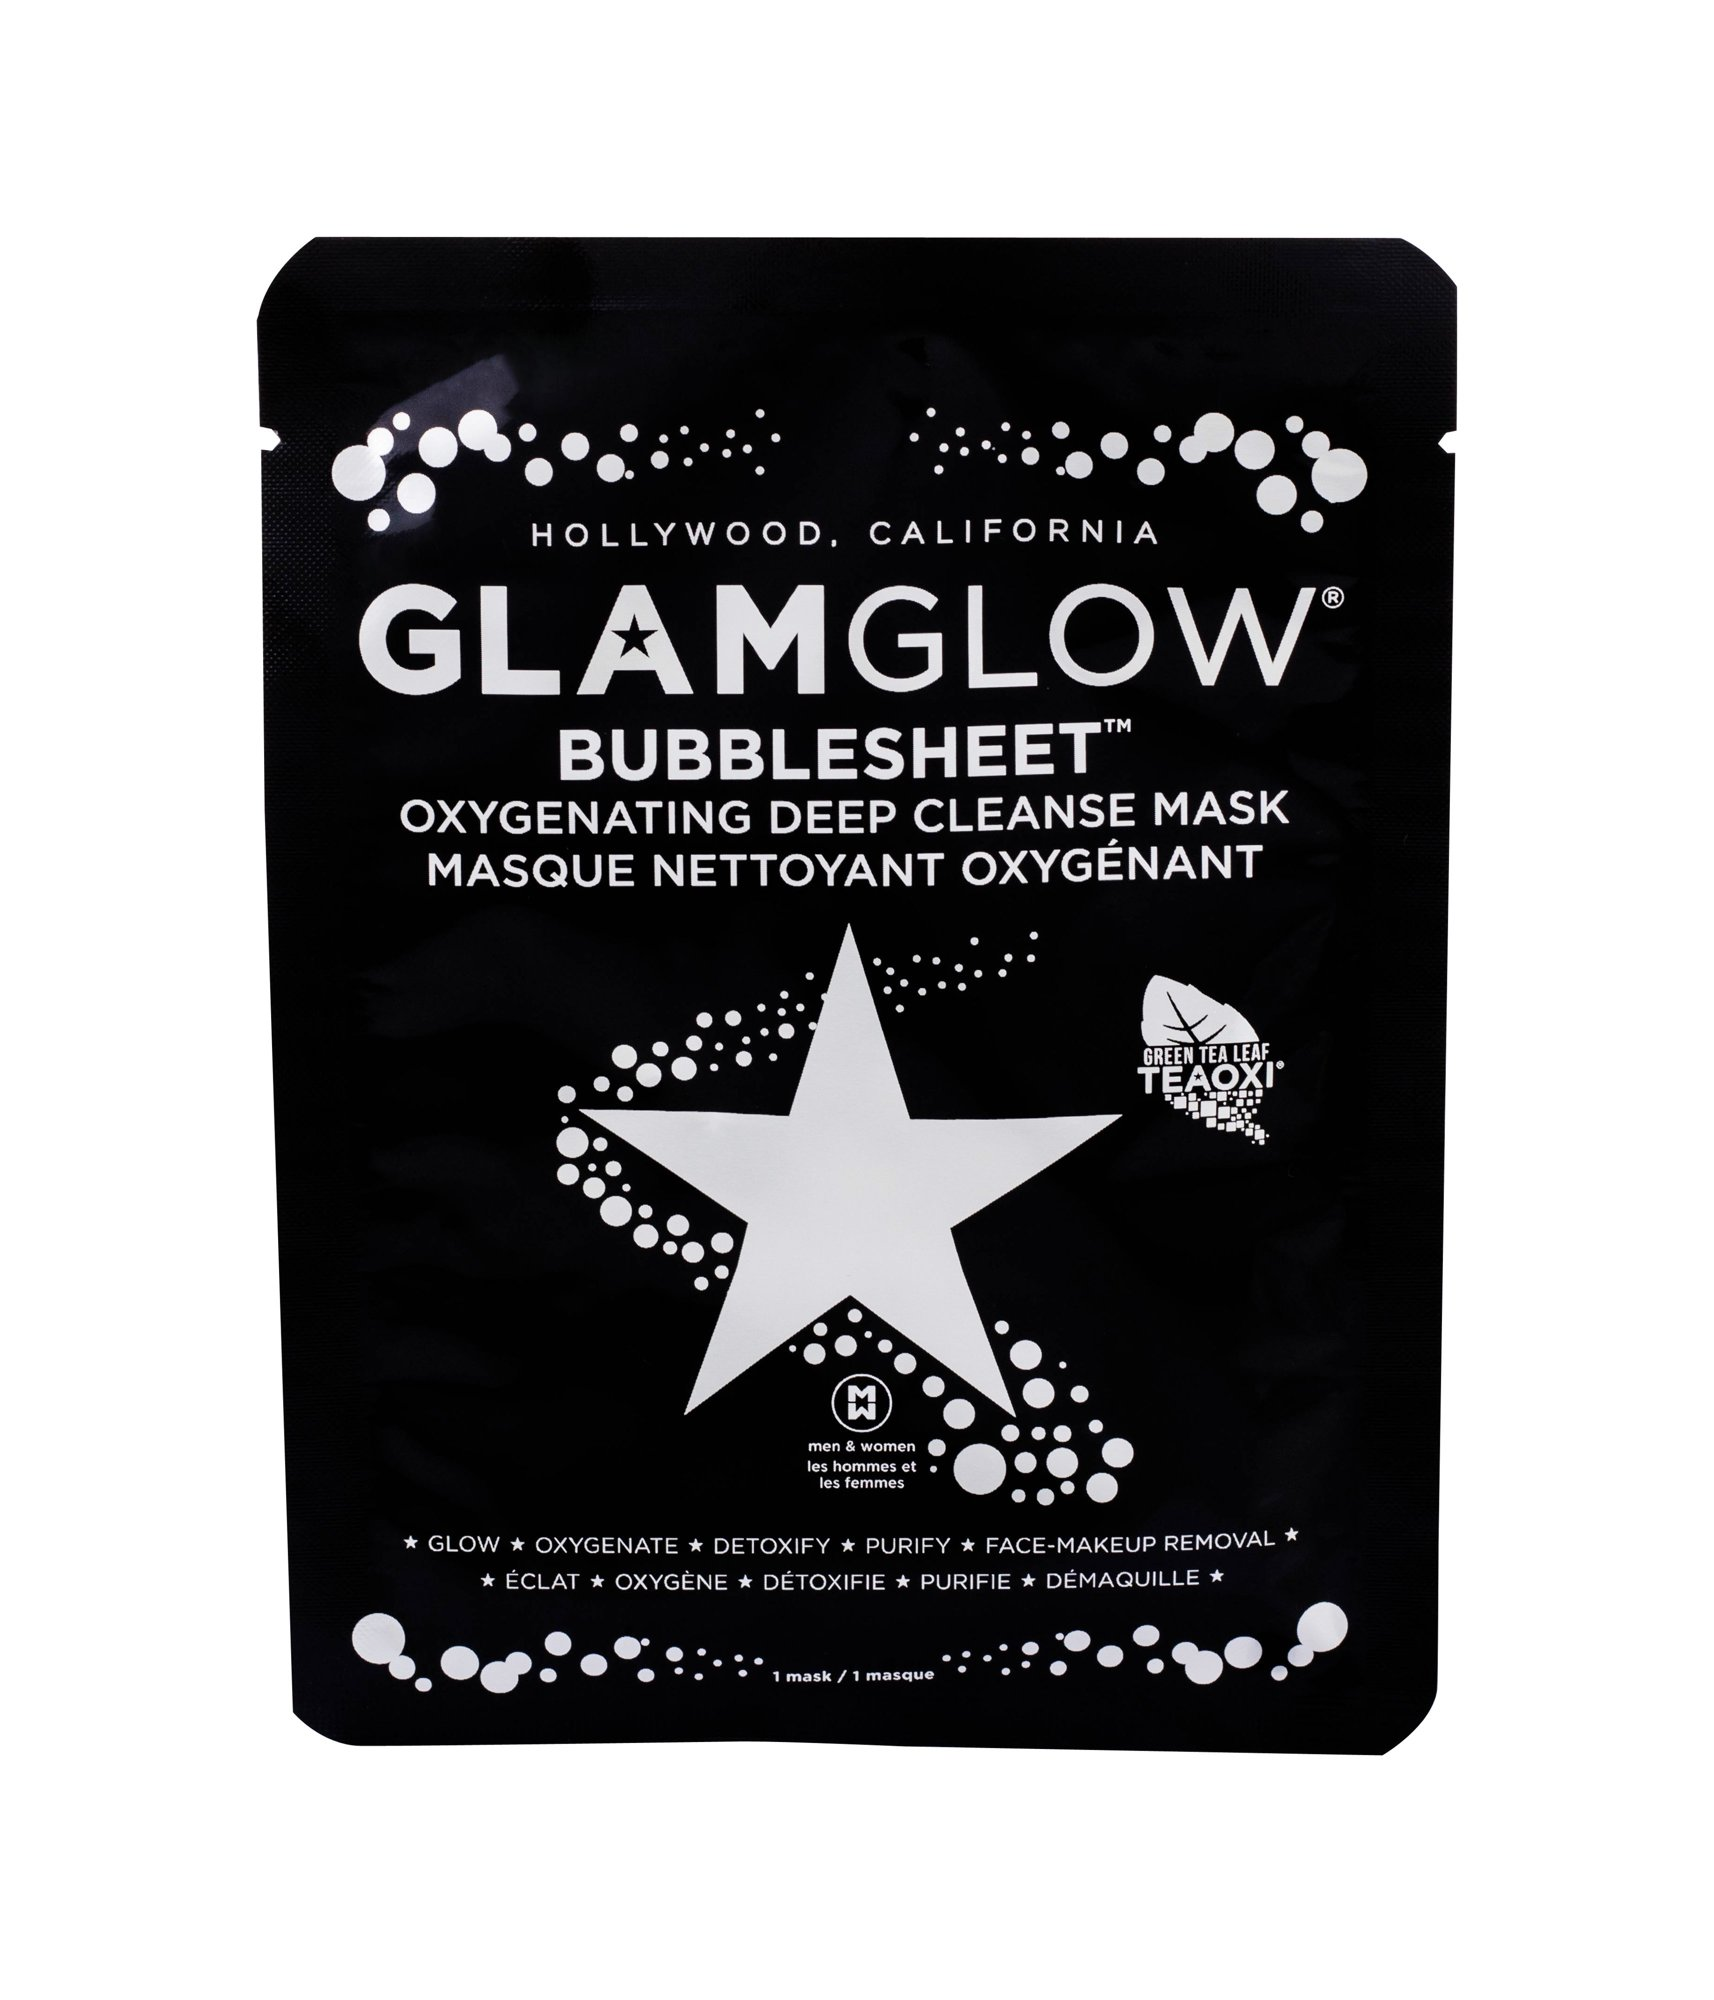 Glam Glow Bubblesheet Face Mask 1ml